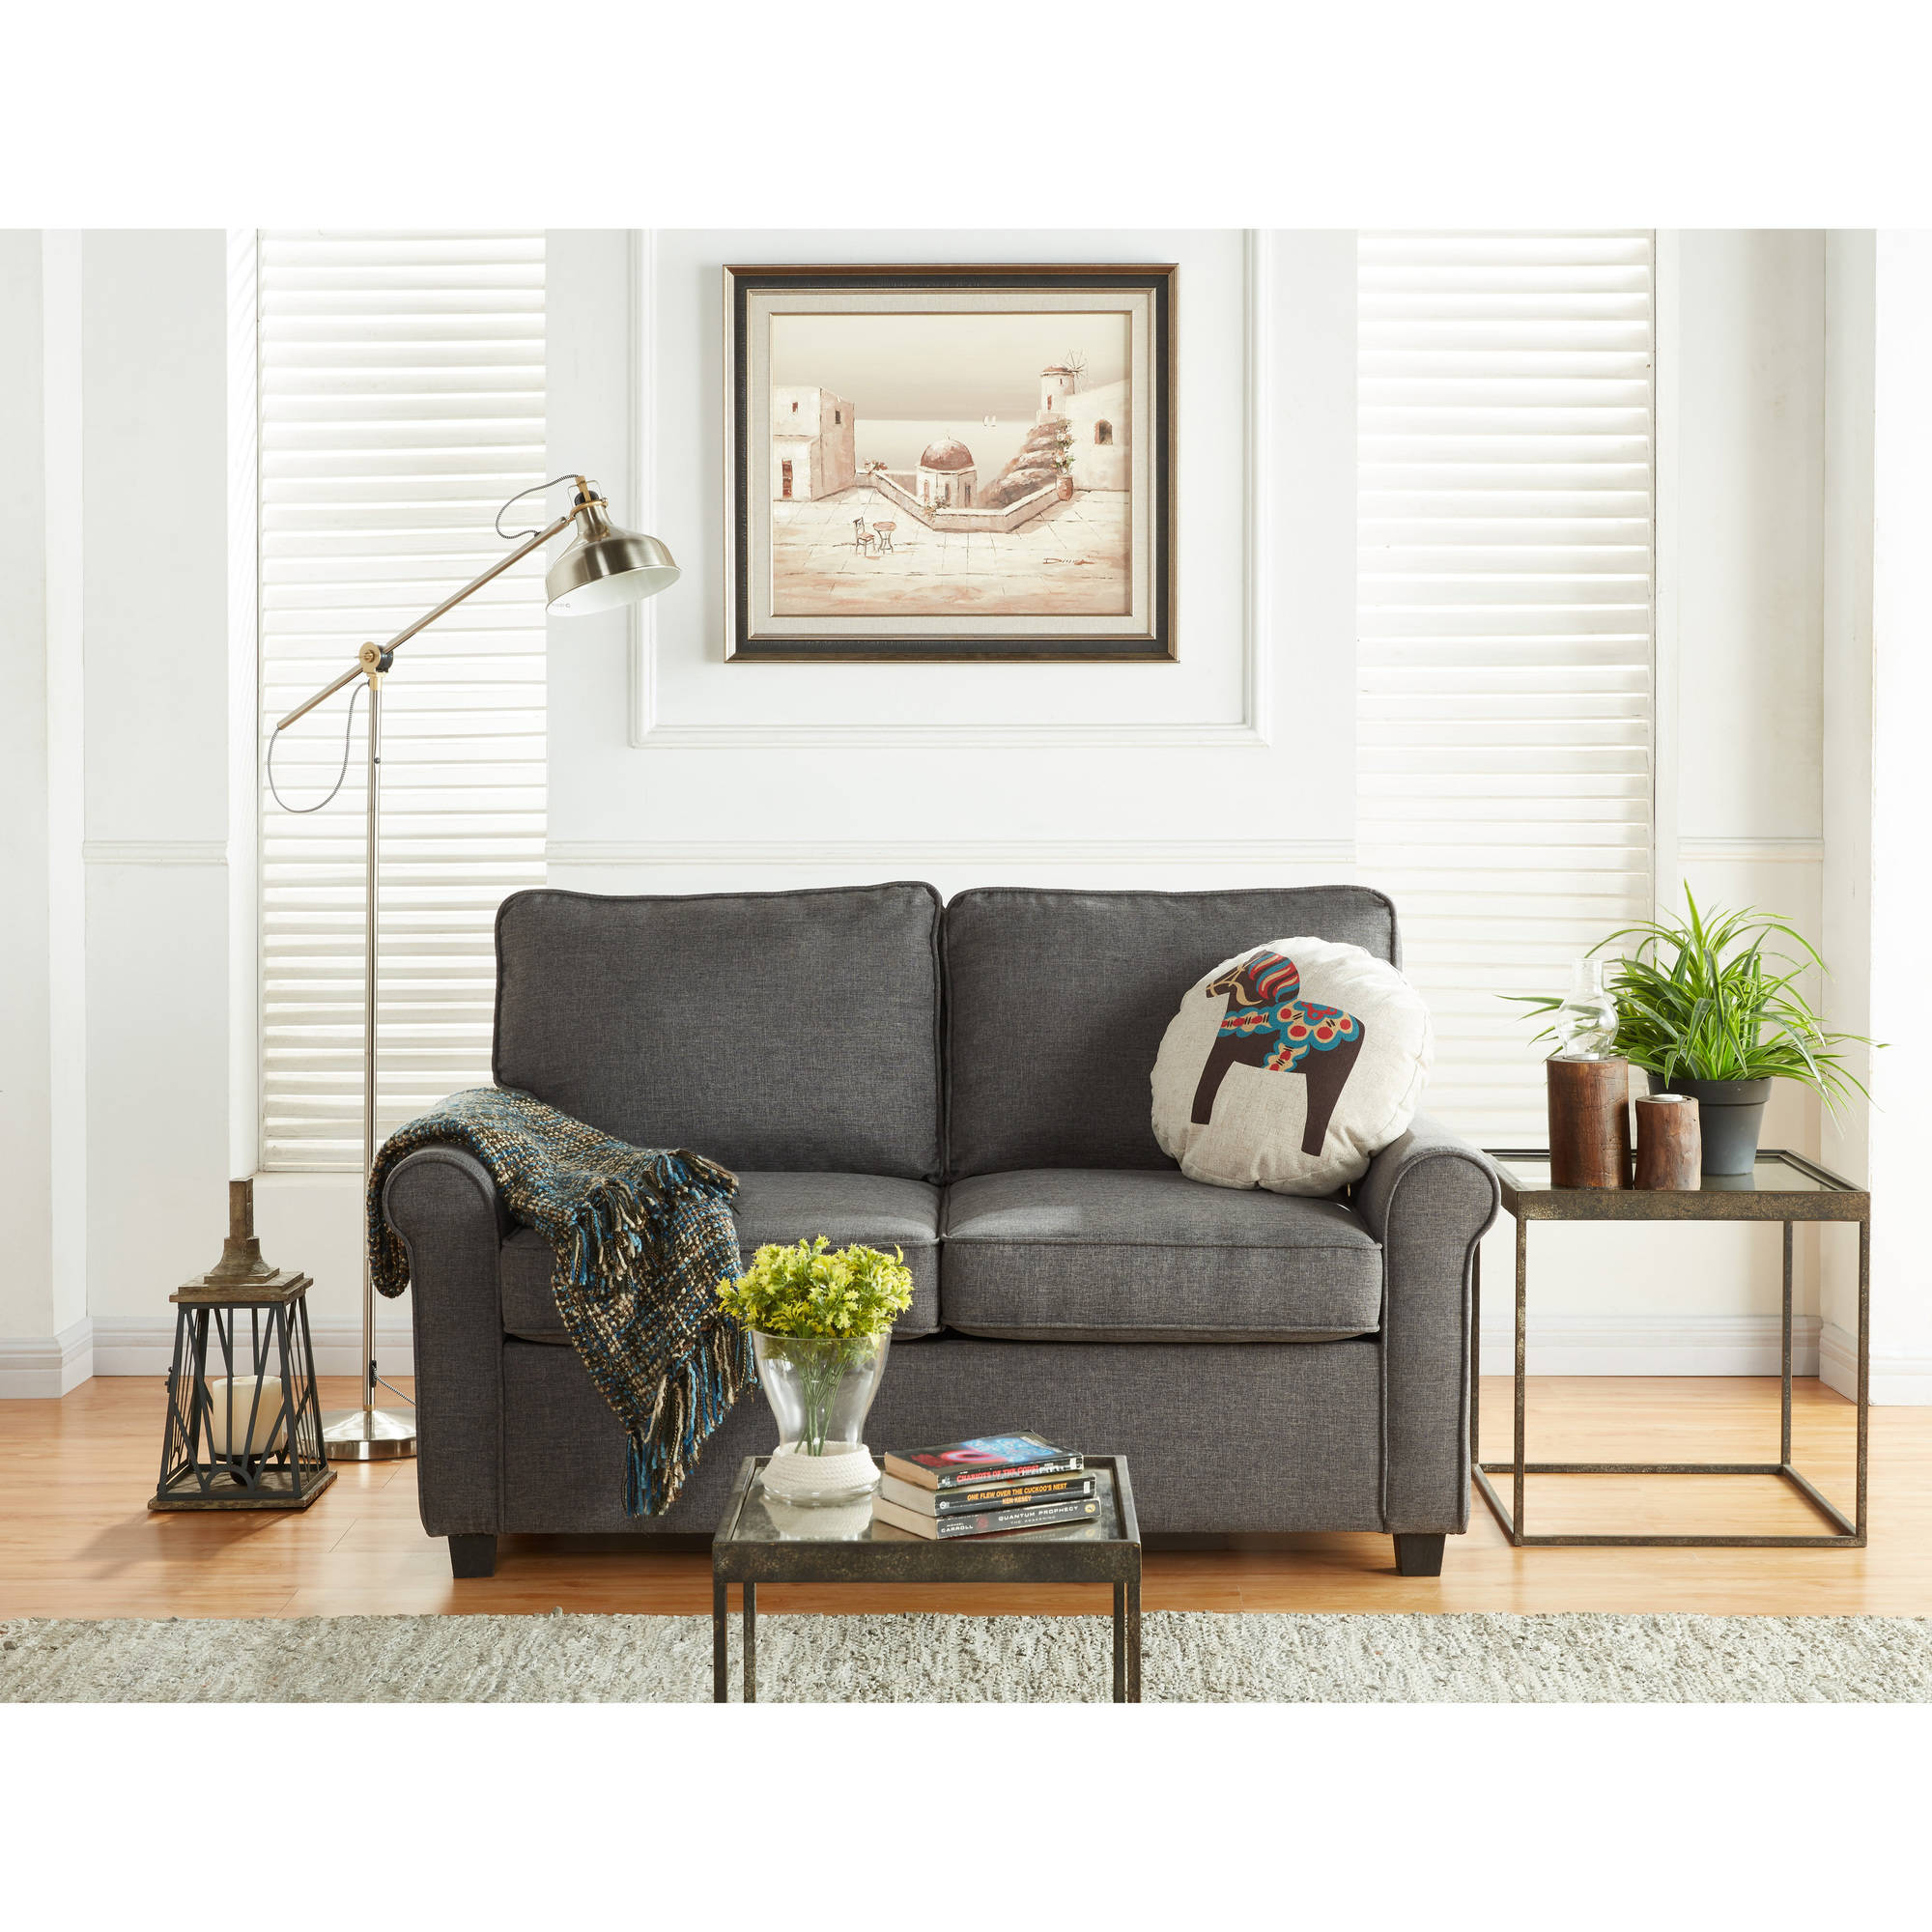 Mainstays Loveseat Sleeper With Memory Foam Mattress, Grey   Walmart.com